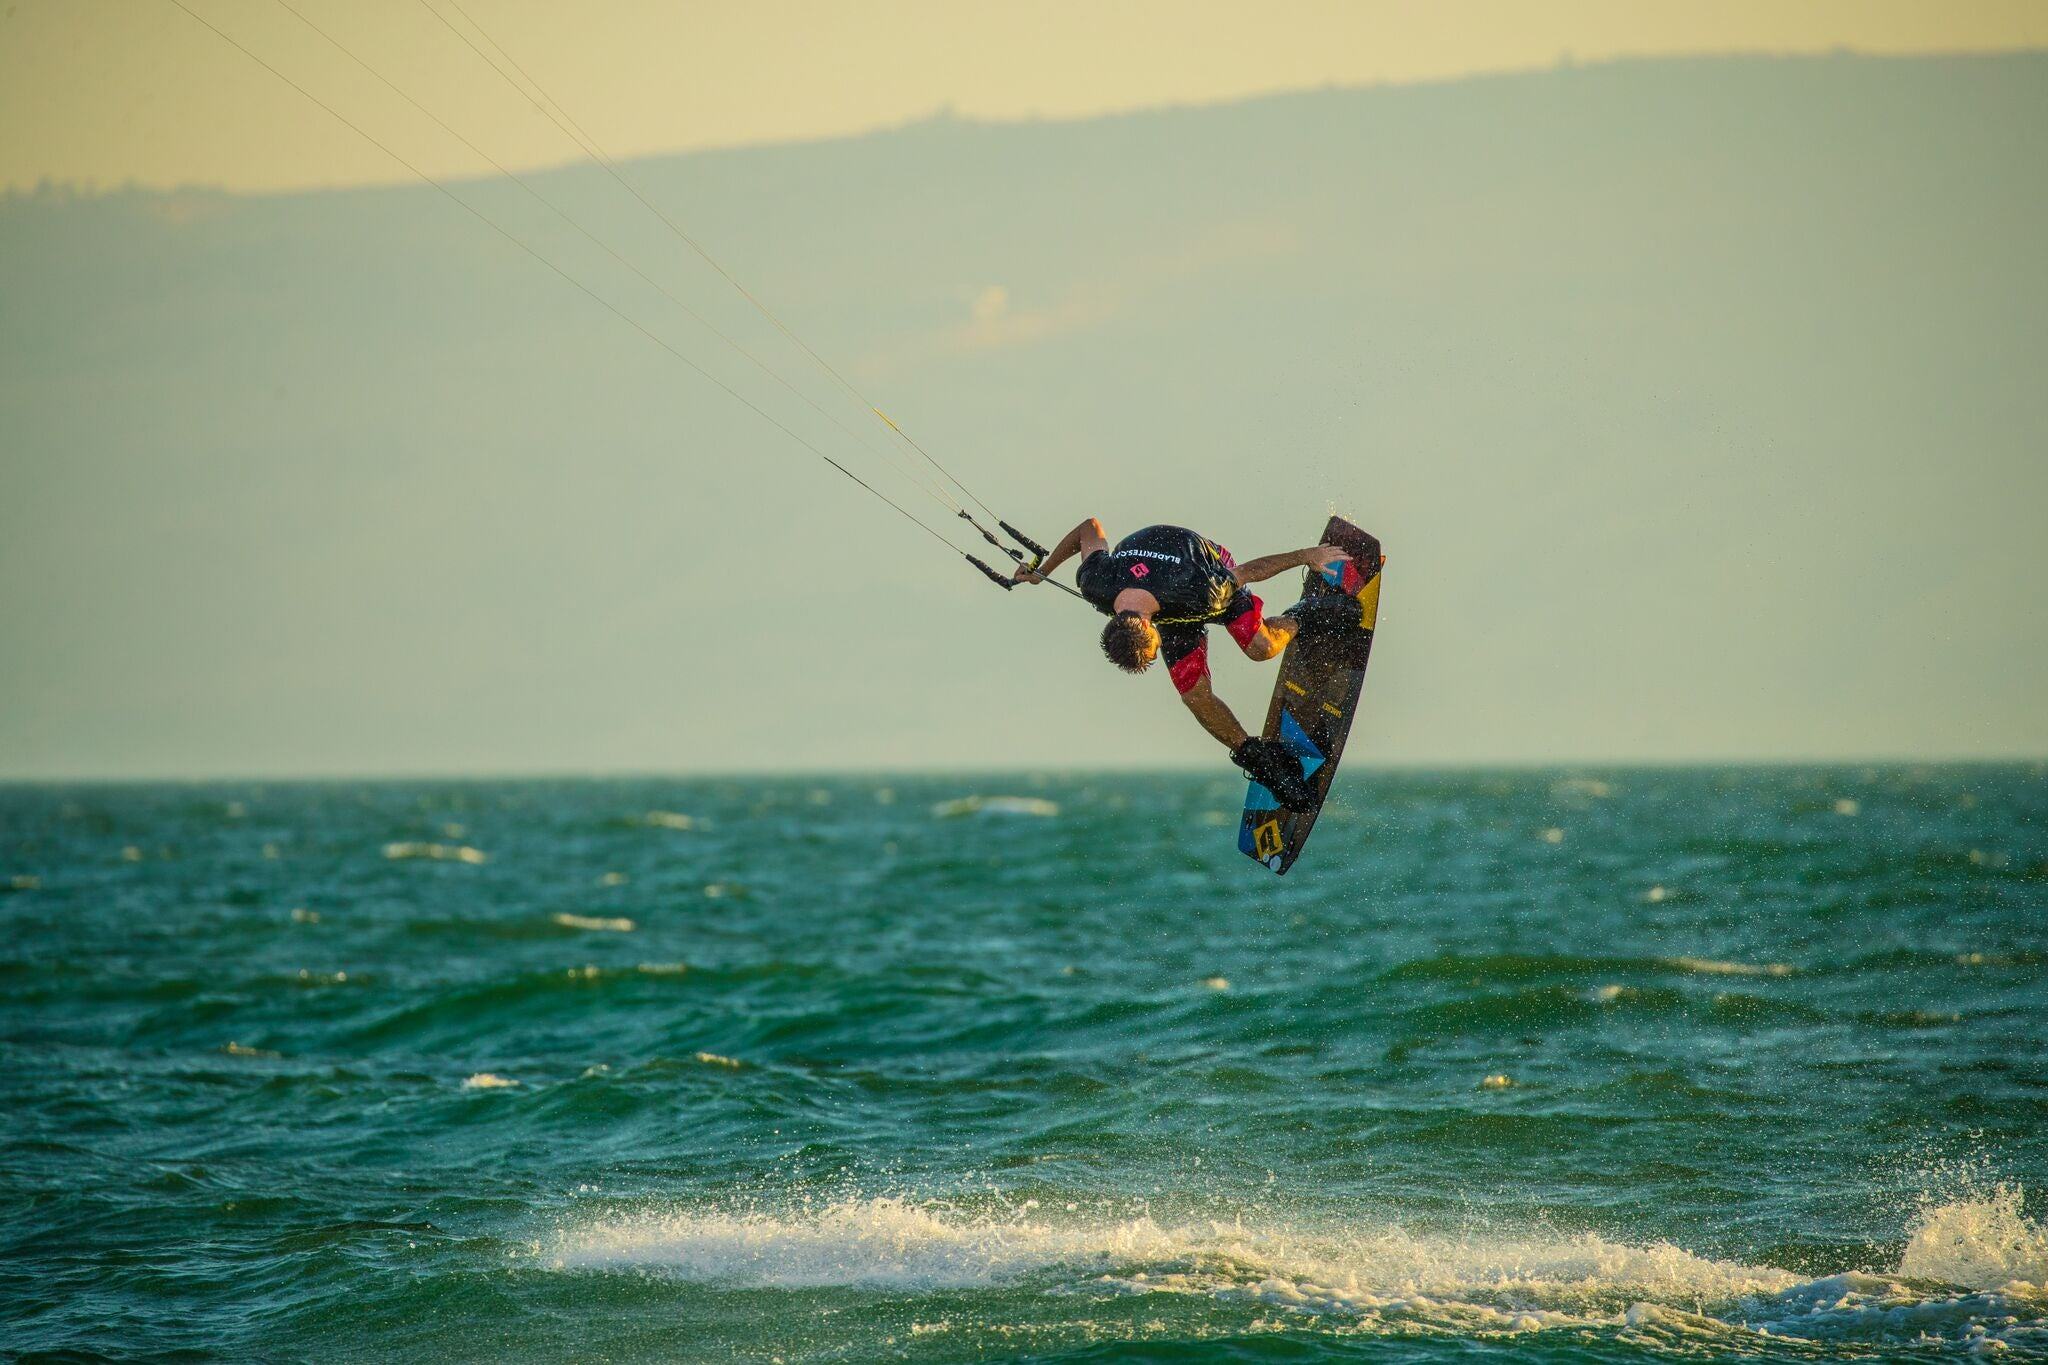 Freestyle kite